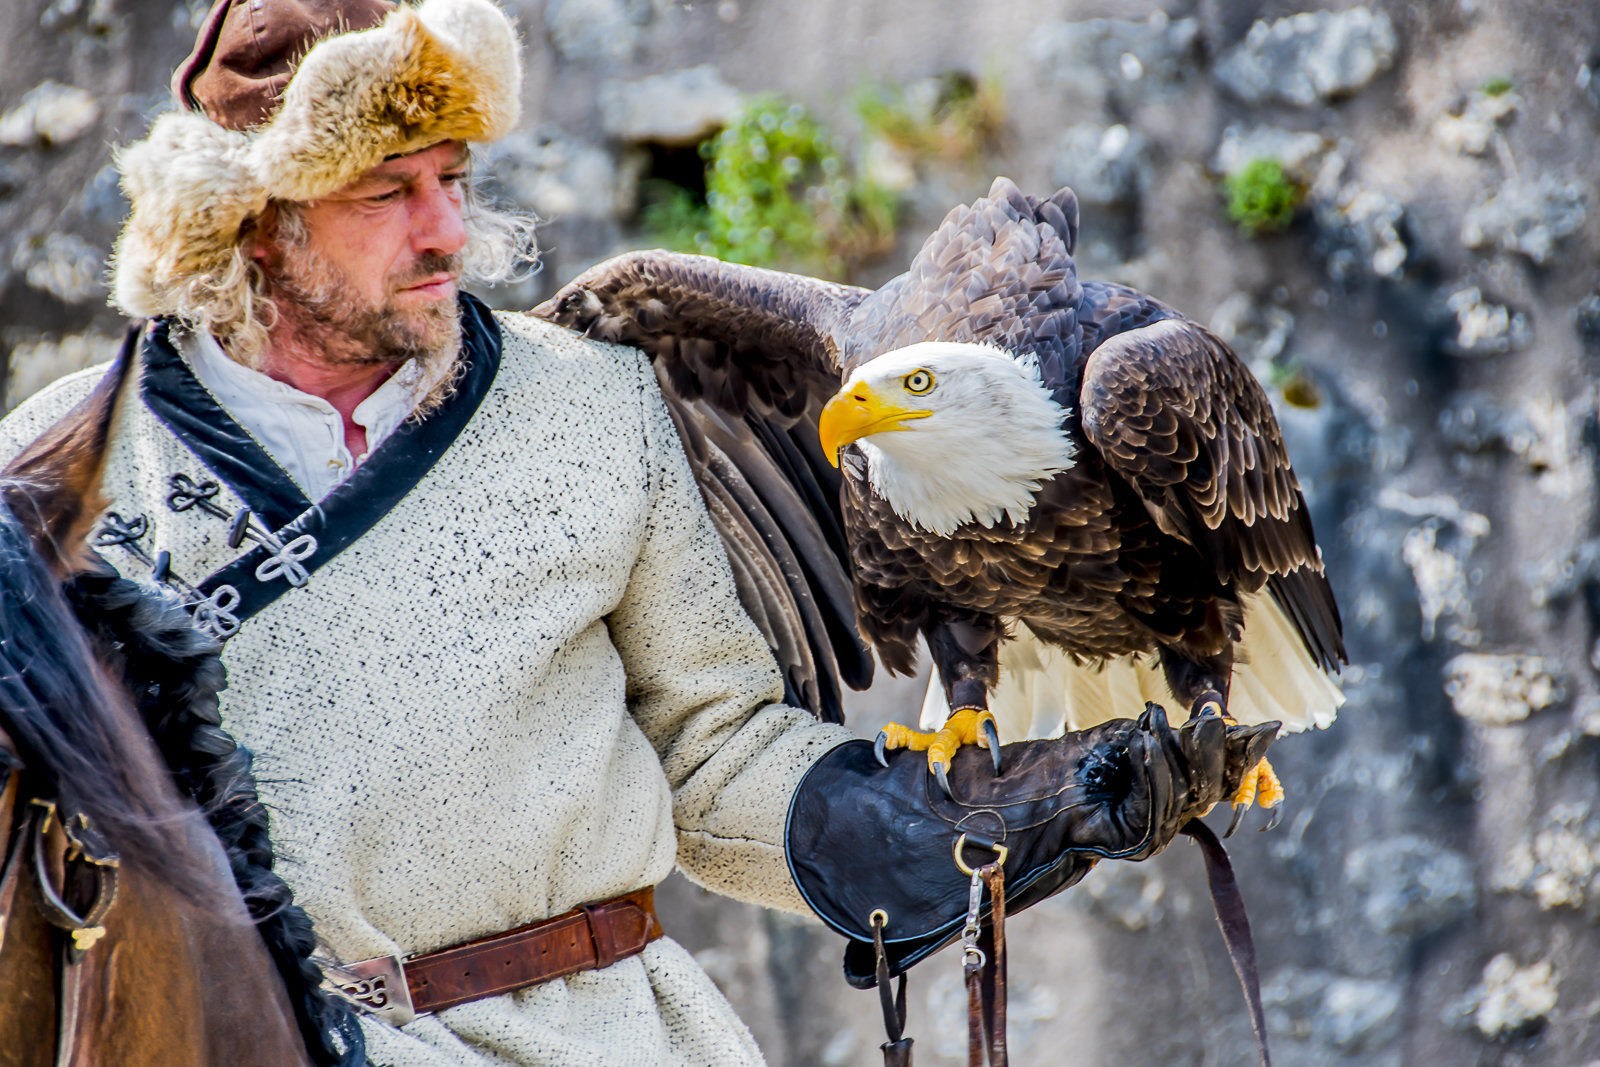 Eagle and Handler in Provins